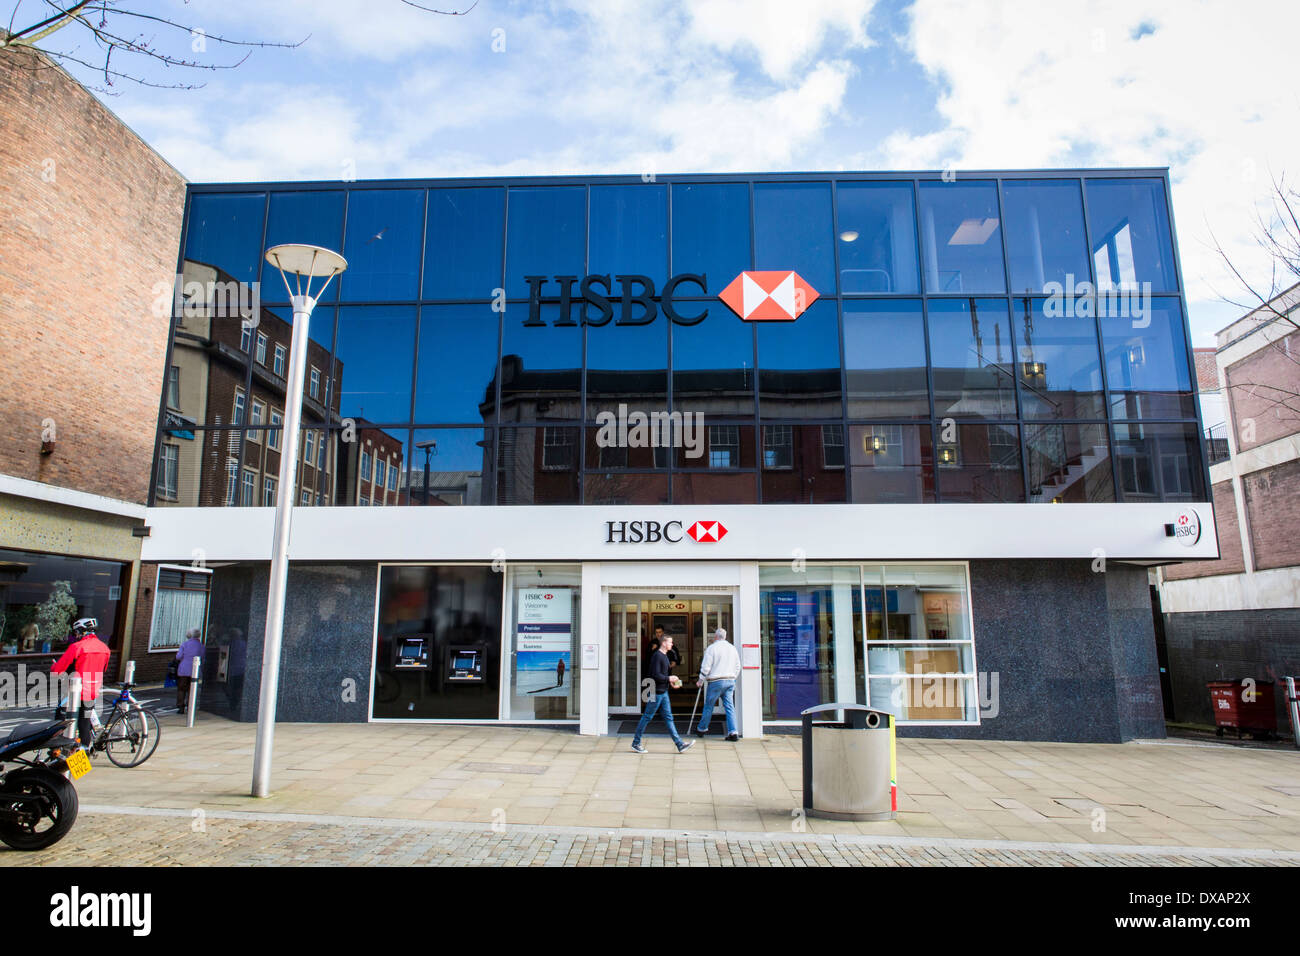 Hsbc Bank Stock Photos & Hsbc Bank Stock Images - Page 2 - Alamy